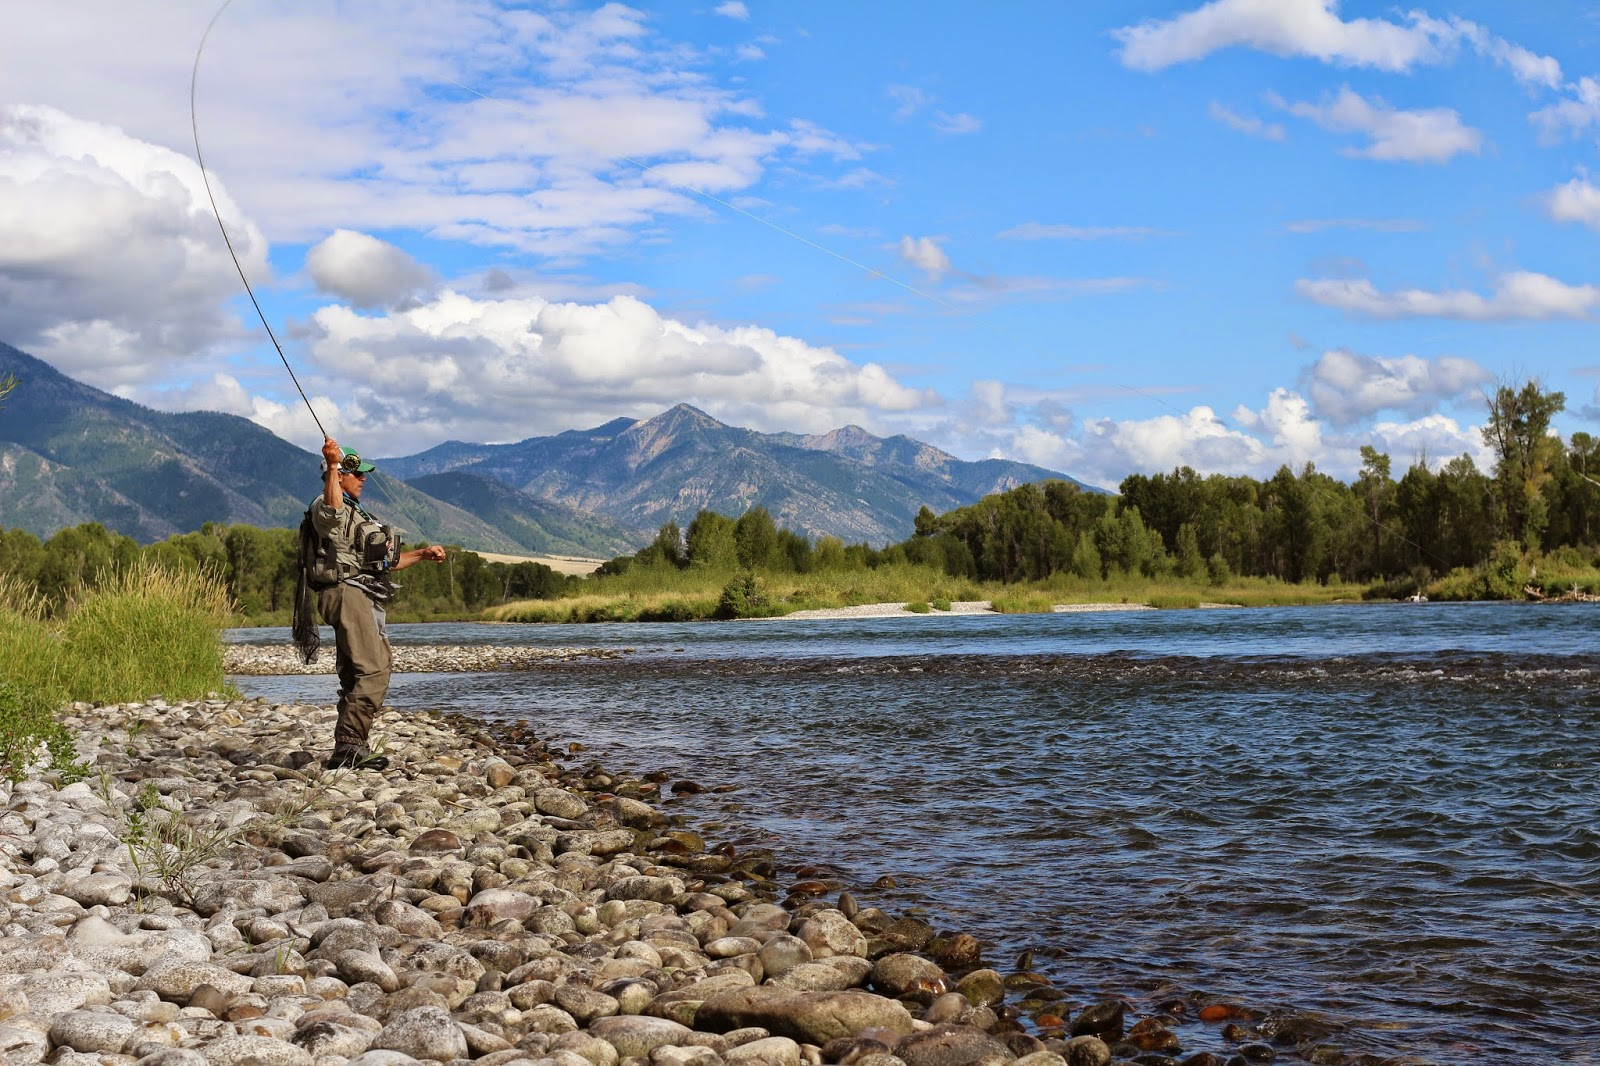 jay scott outdoors jackson hole wyoming fly fishing photos 10